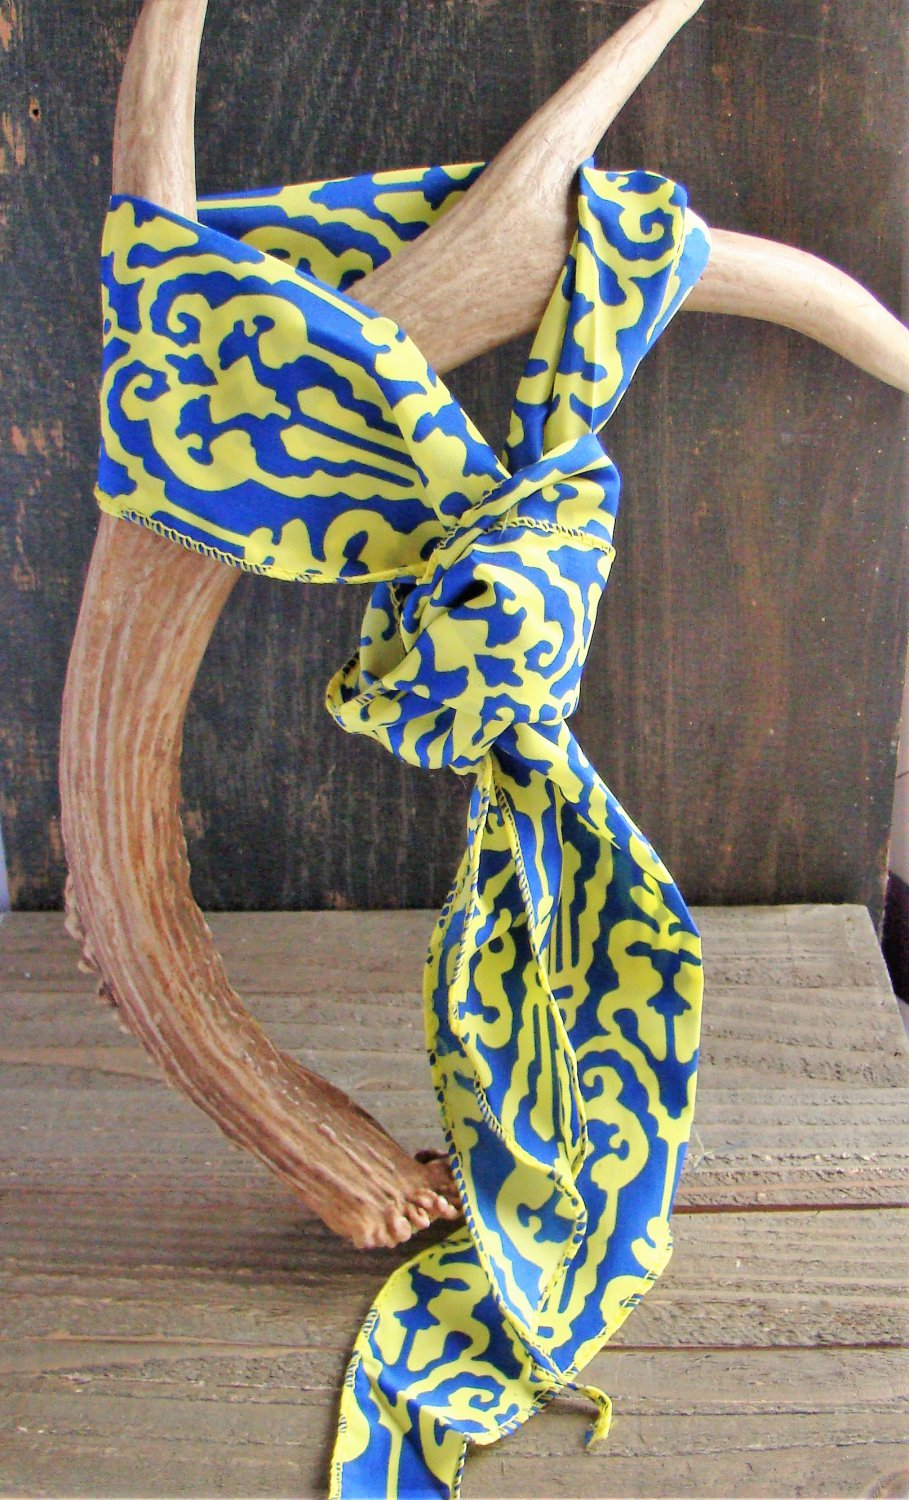 Yellow & Blue Filigree Print Soft 3-In-1 Long Scarf Versatile Wear Fashion Belt Hair Accessory